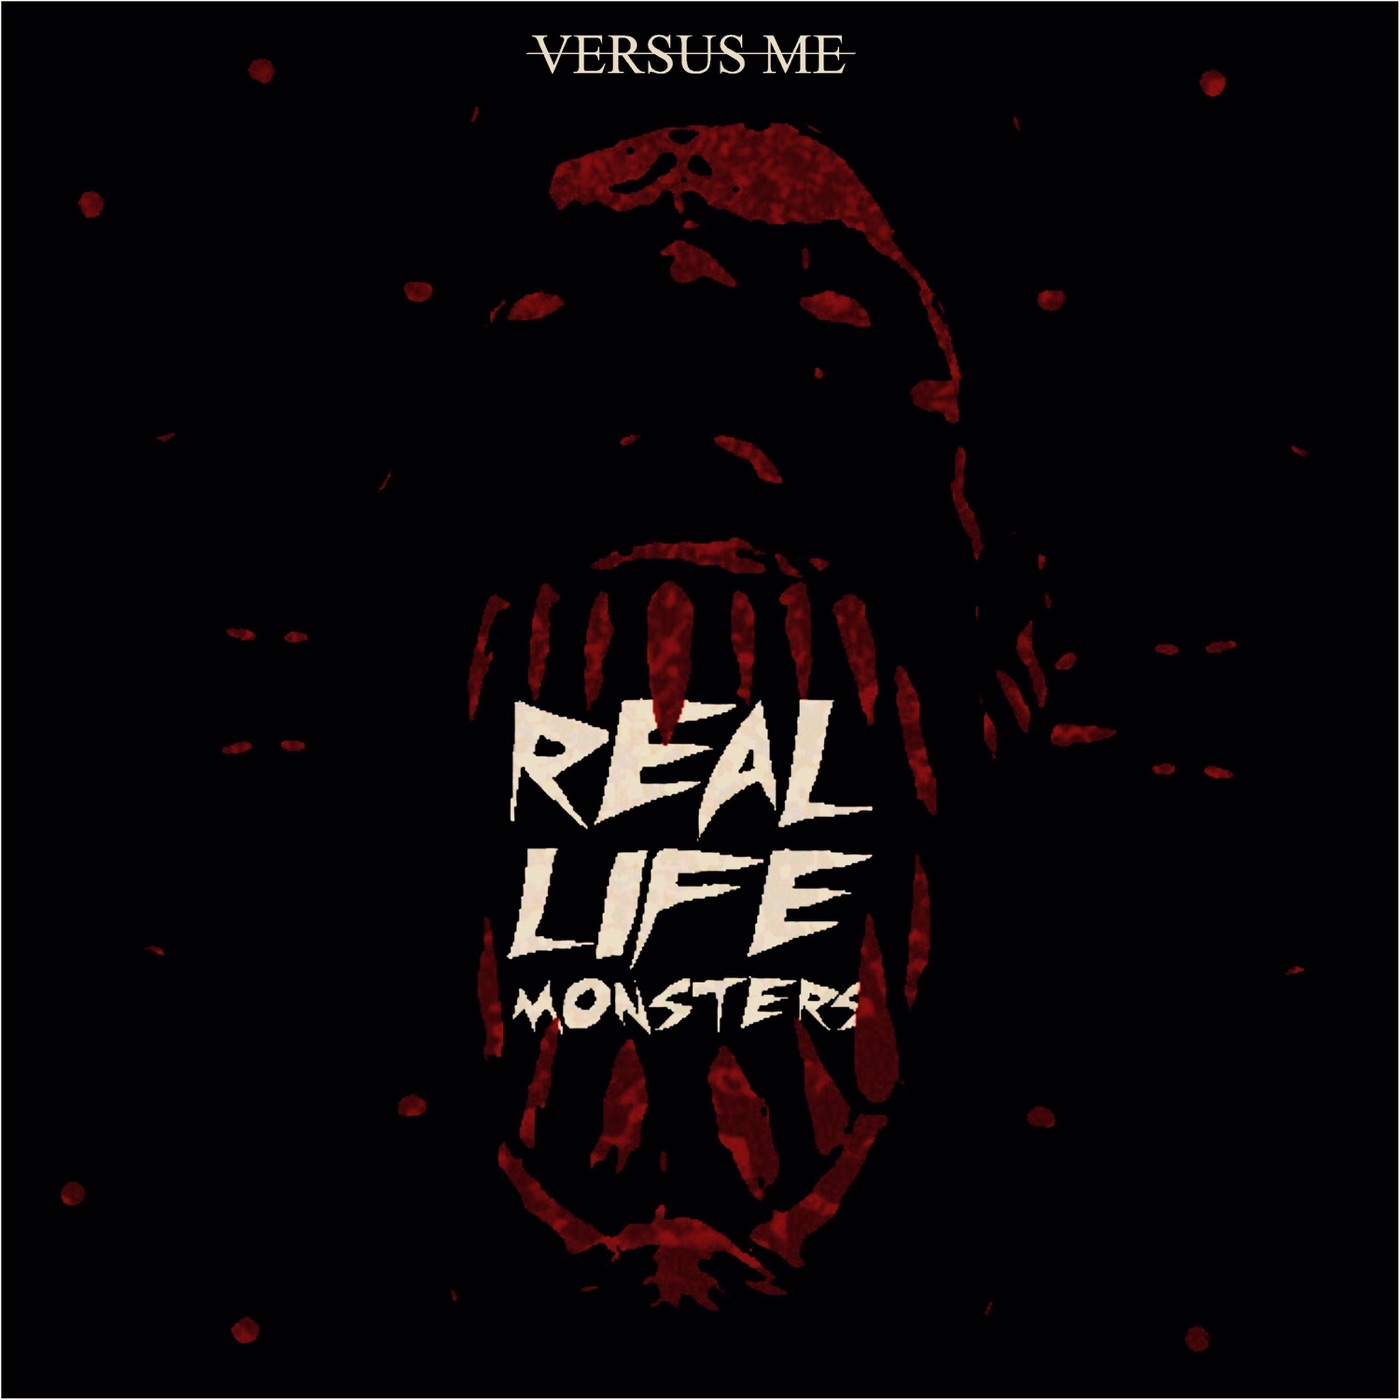 Versus Me - Real Life Monsters [single] (2017)